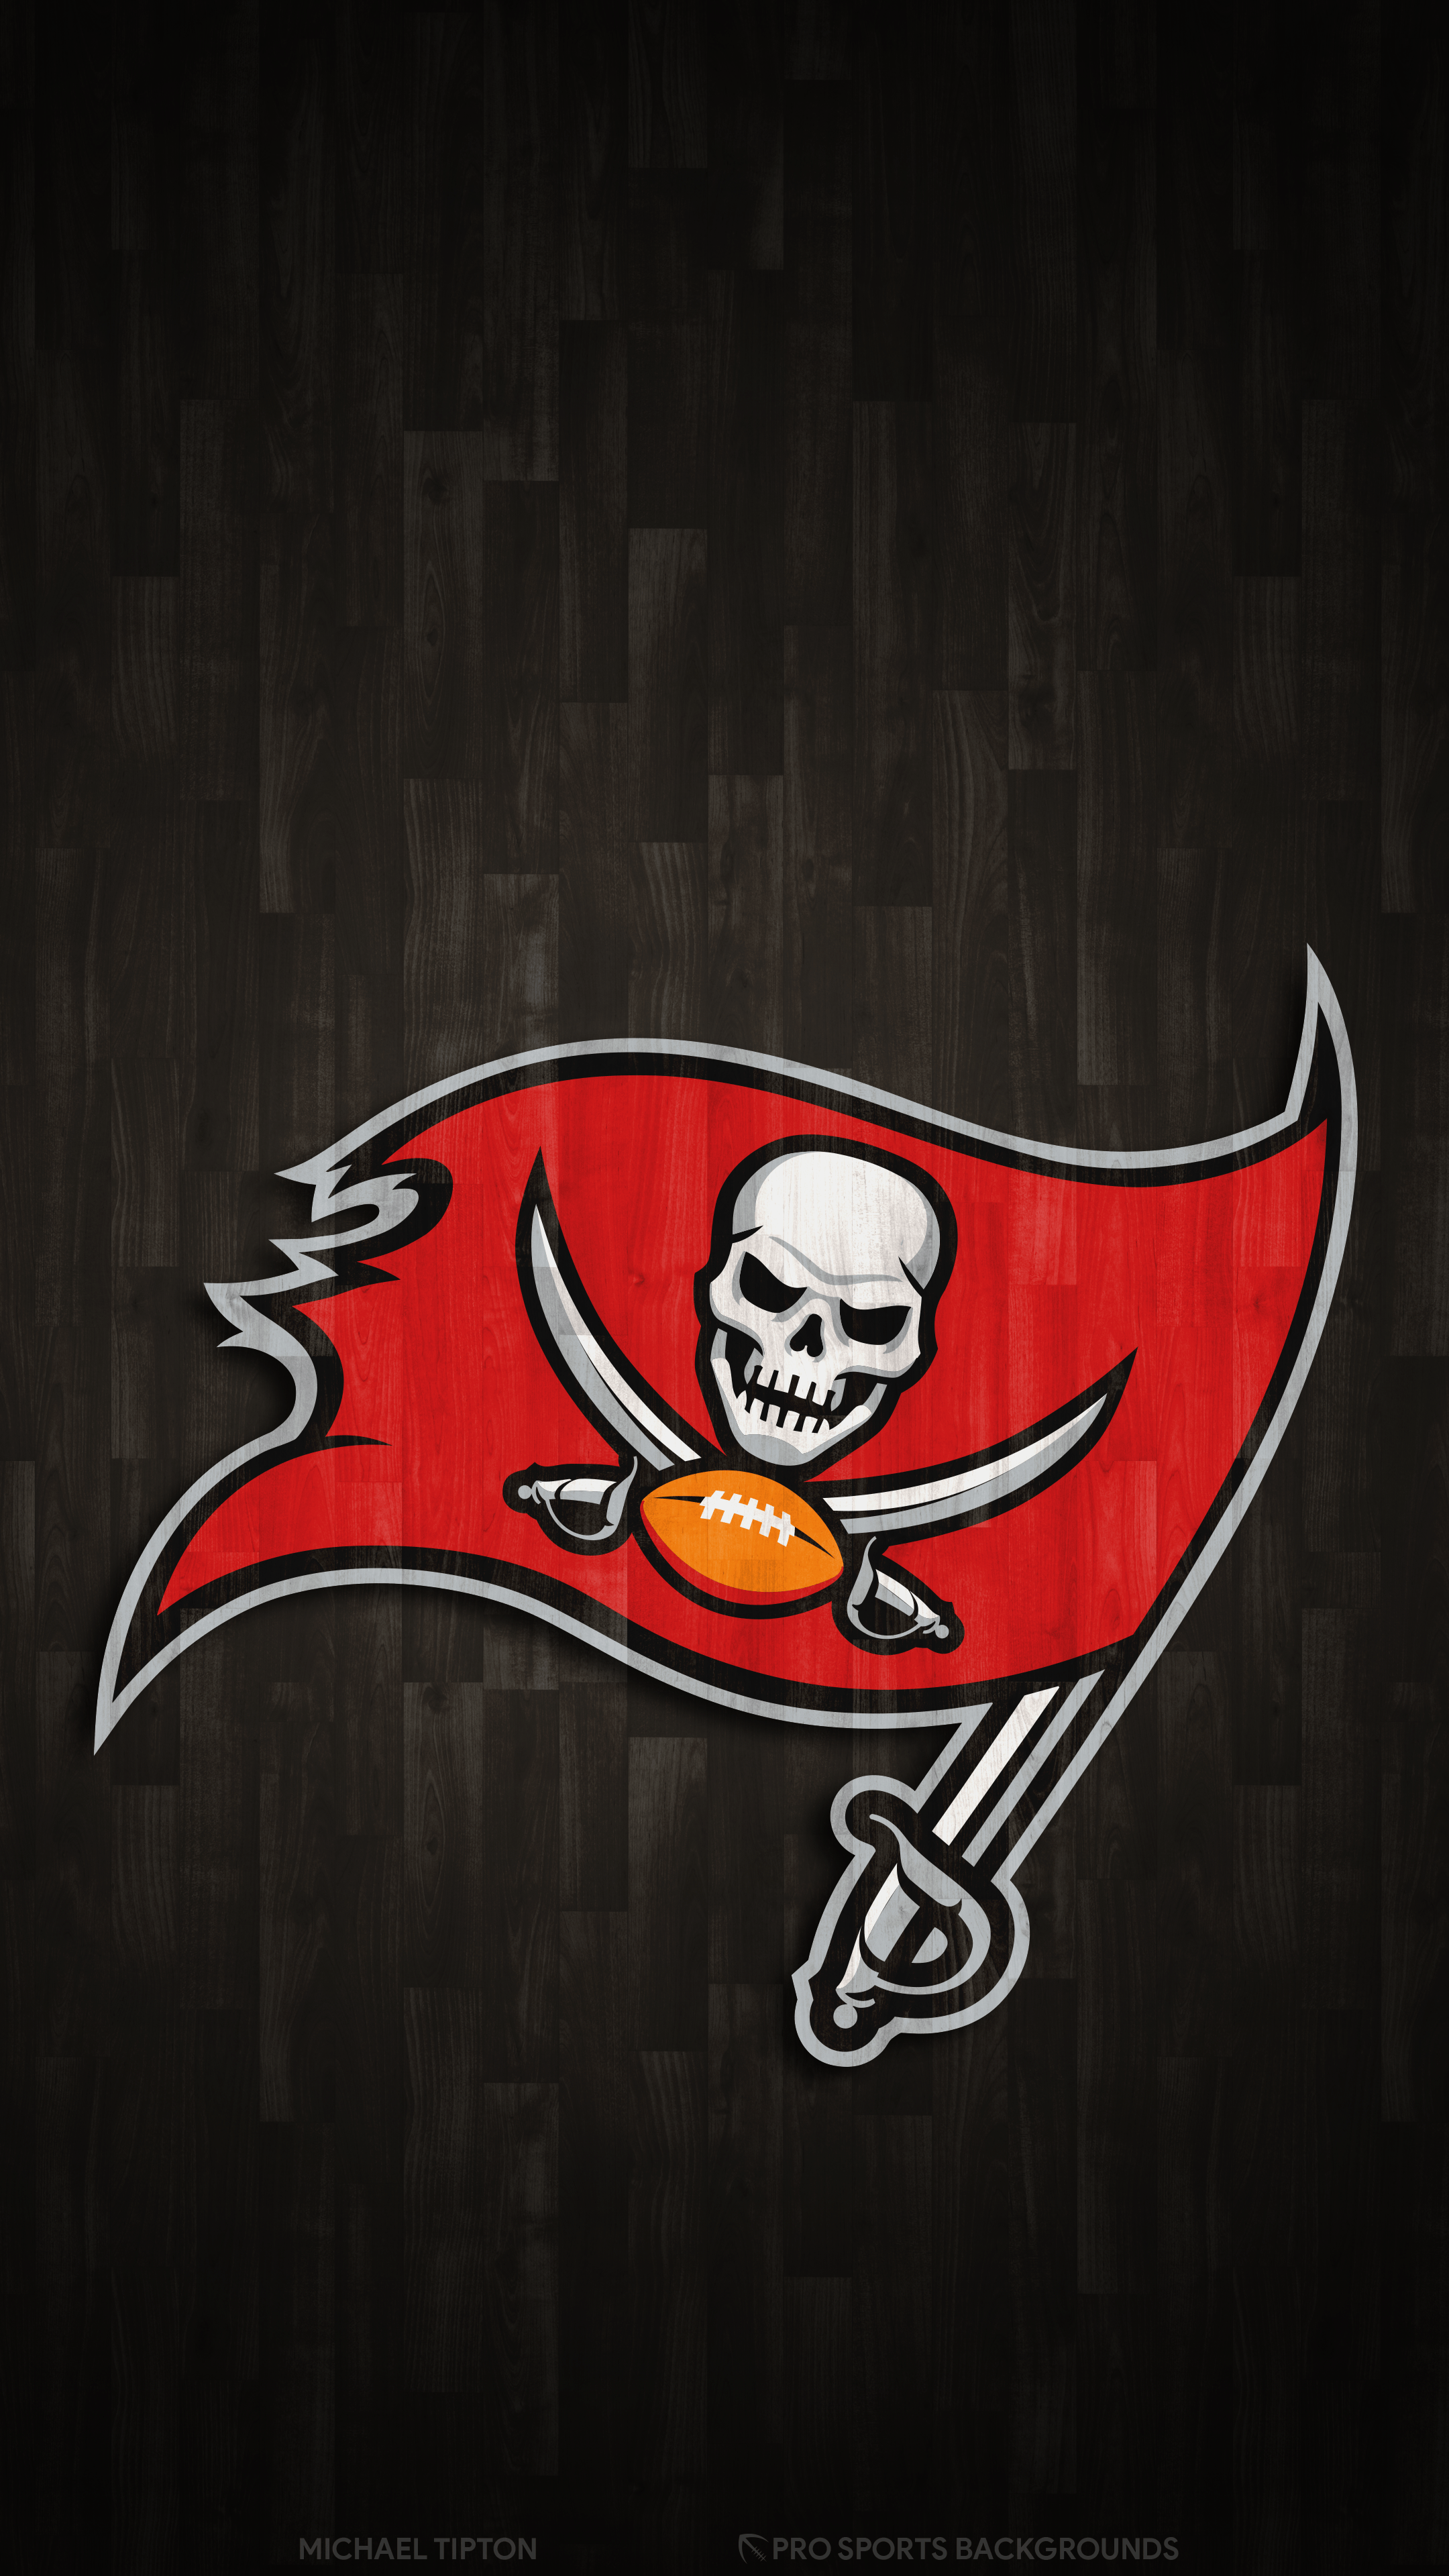 10+ Tampa Bay Buccaneers Wallpaper 2019